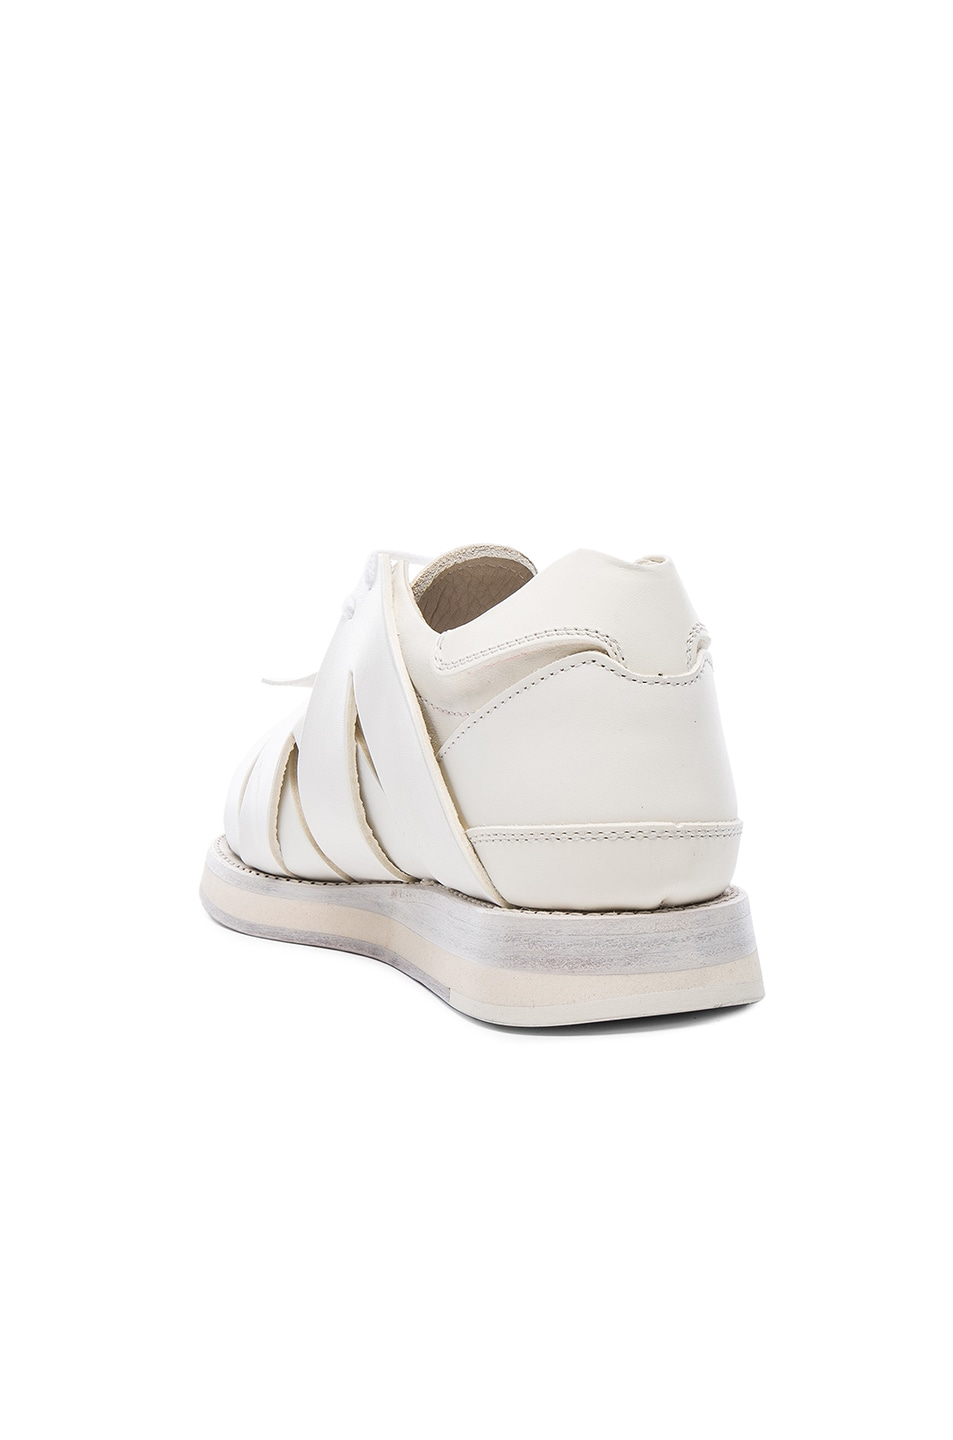 Hender Scheme 2015 Sneakers in White | FWRD